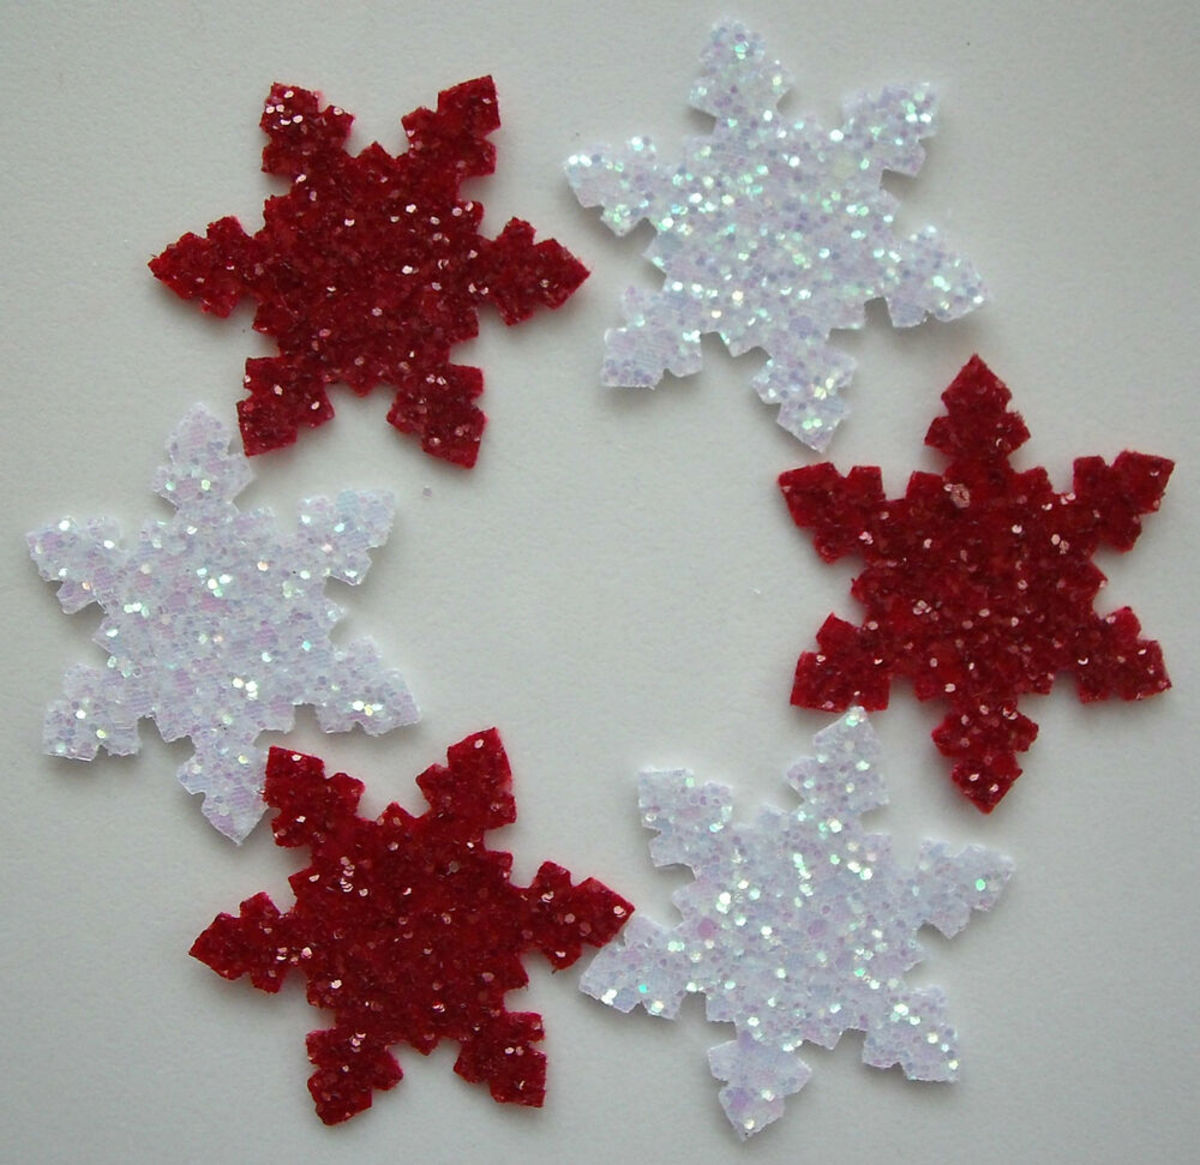 You can make any die cut special with your own glitter paper